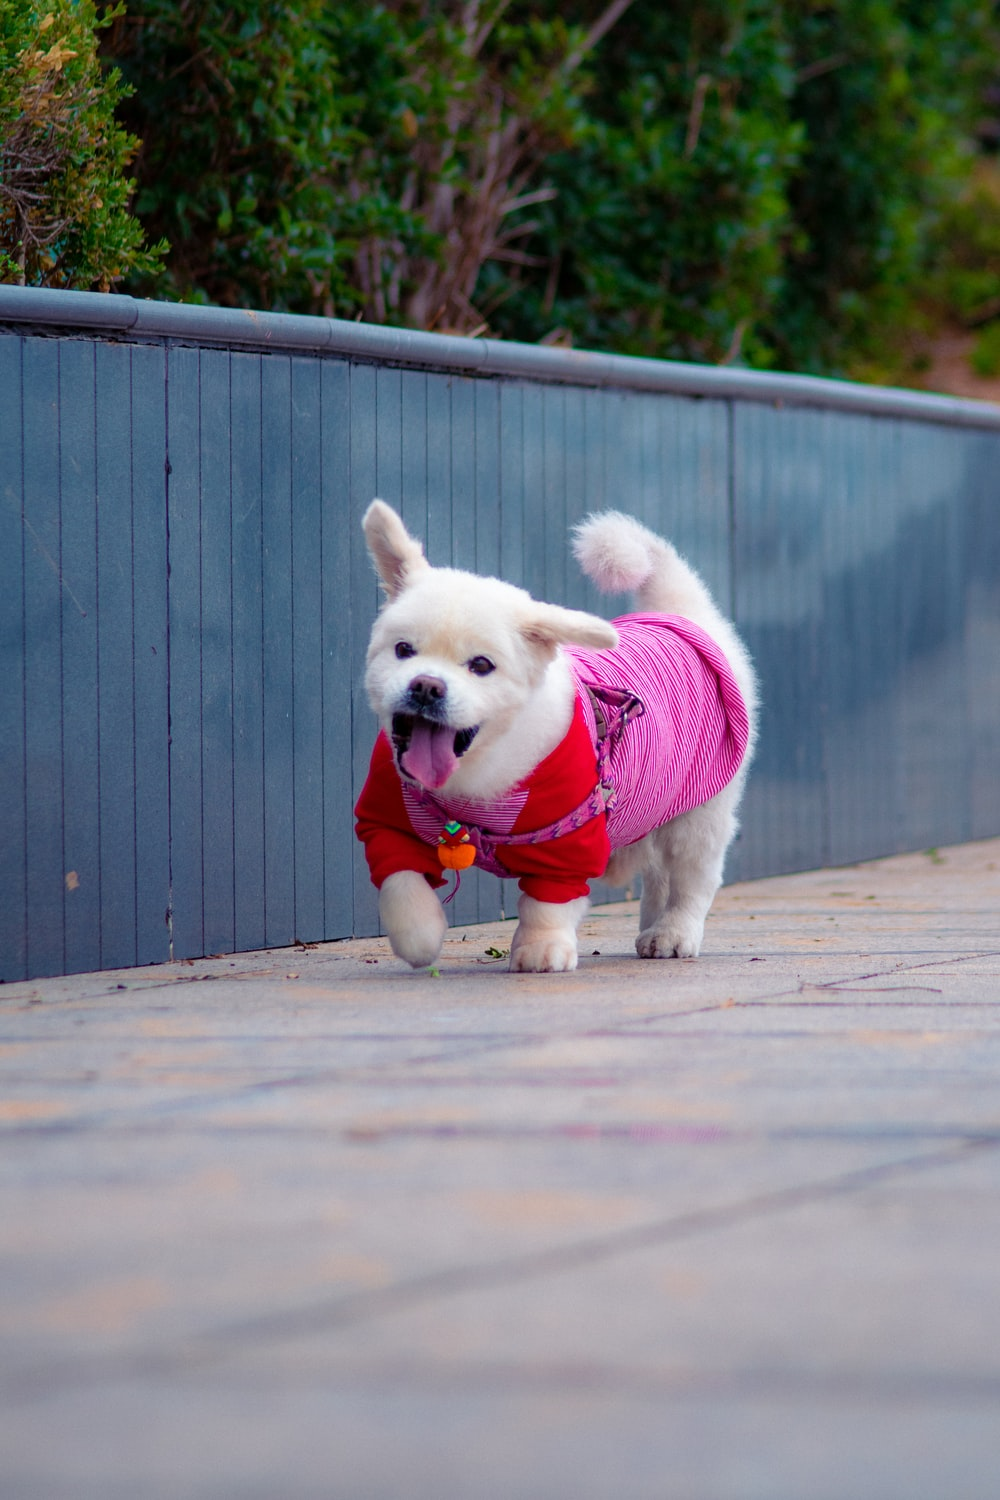 short-coated white puppy wearing pink shirt walking near fence